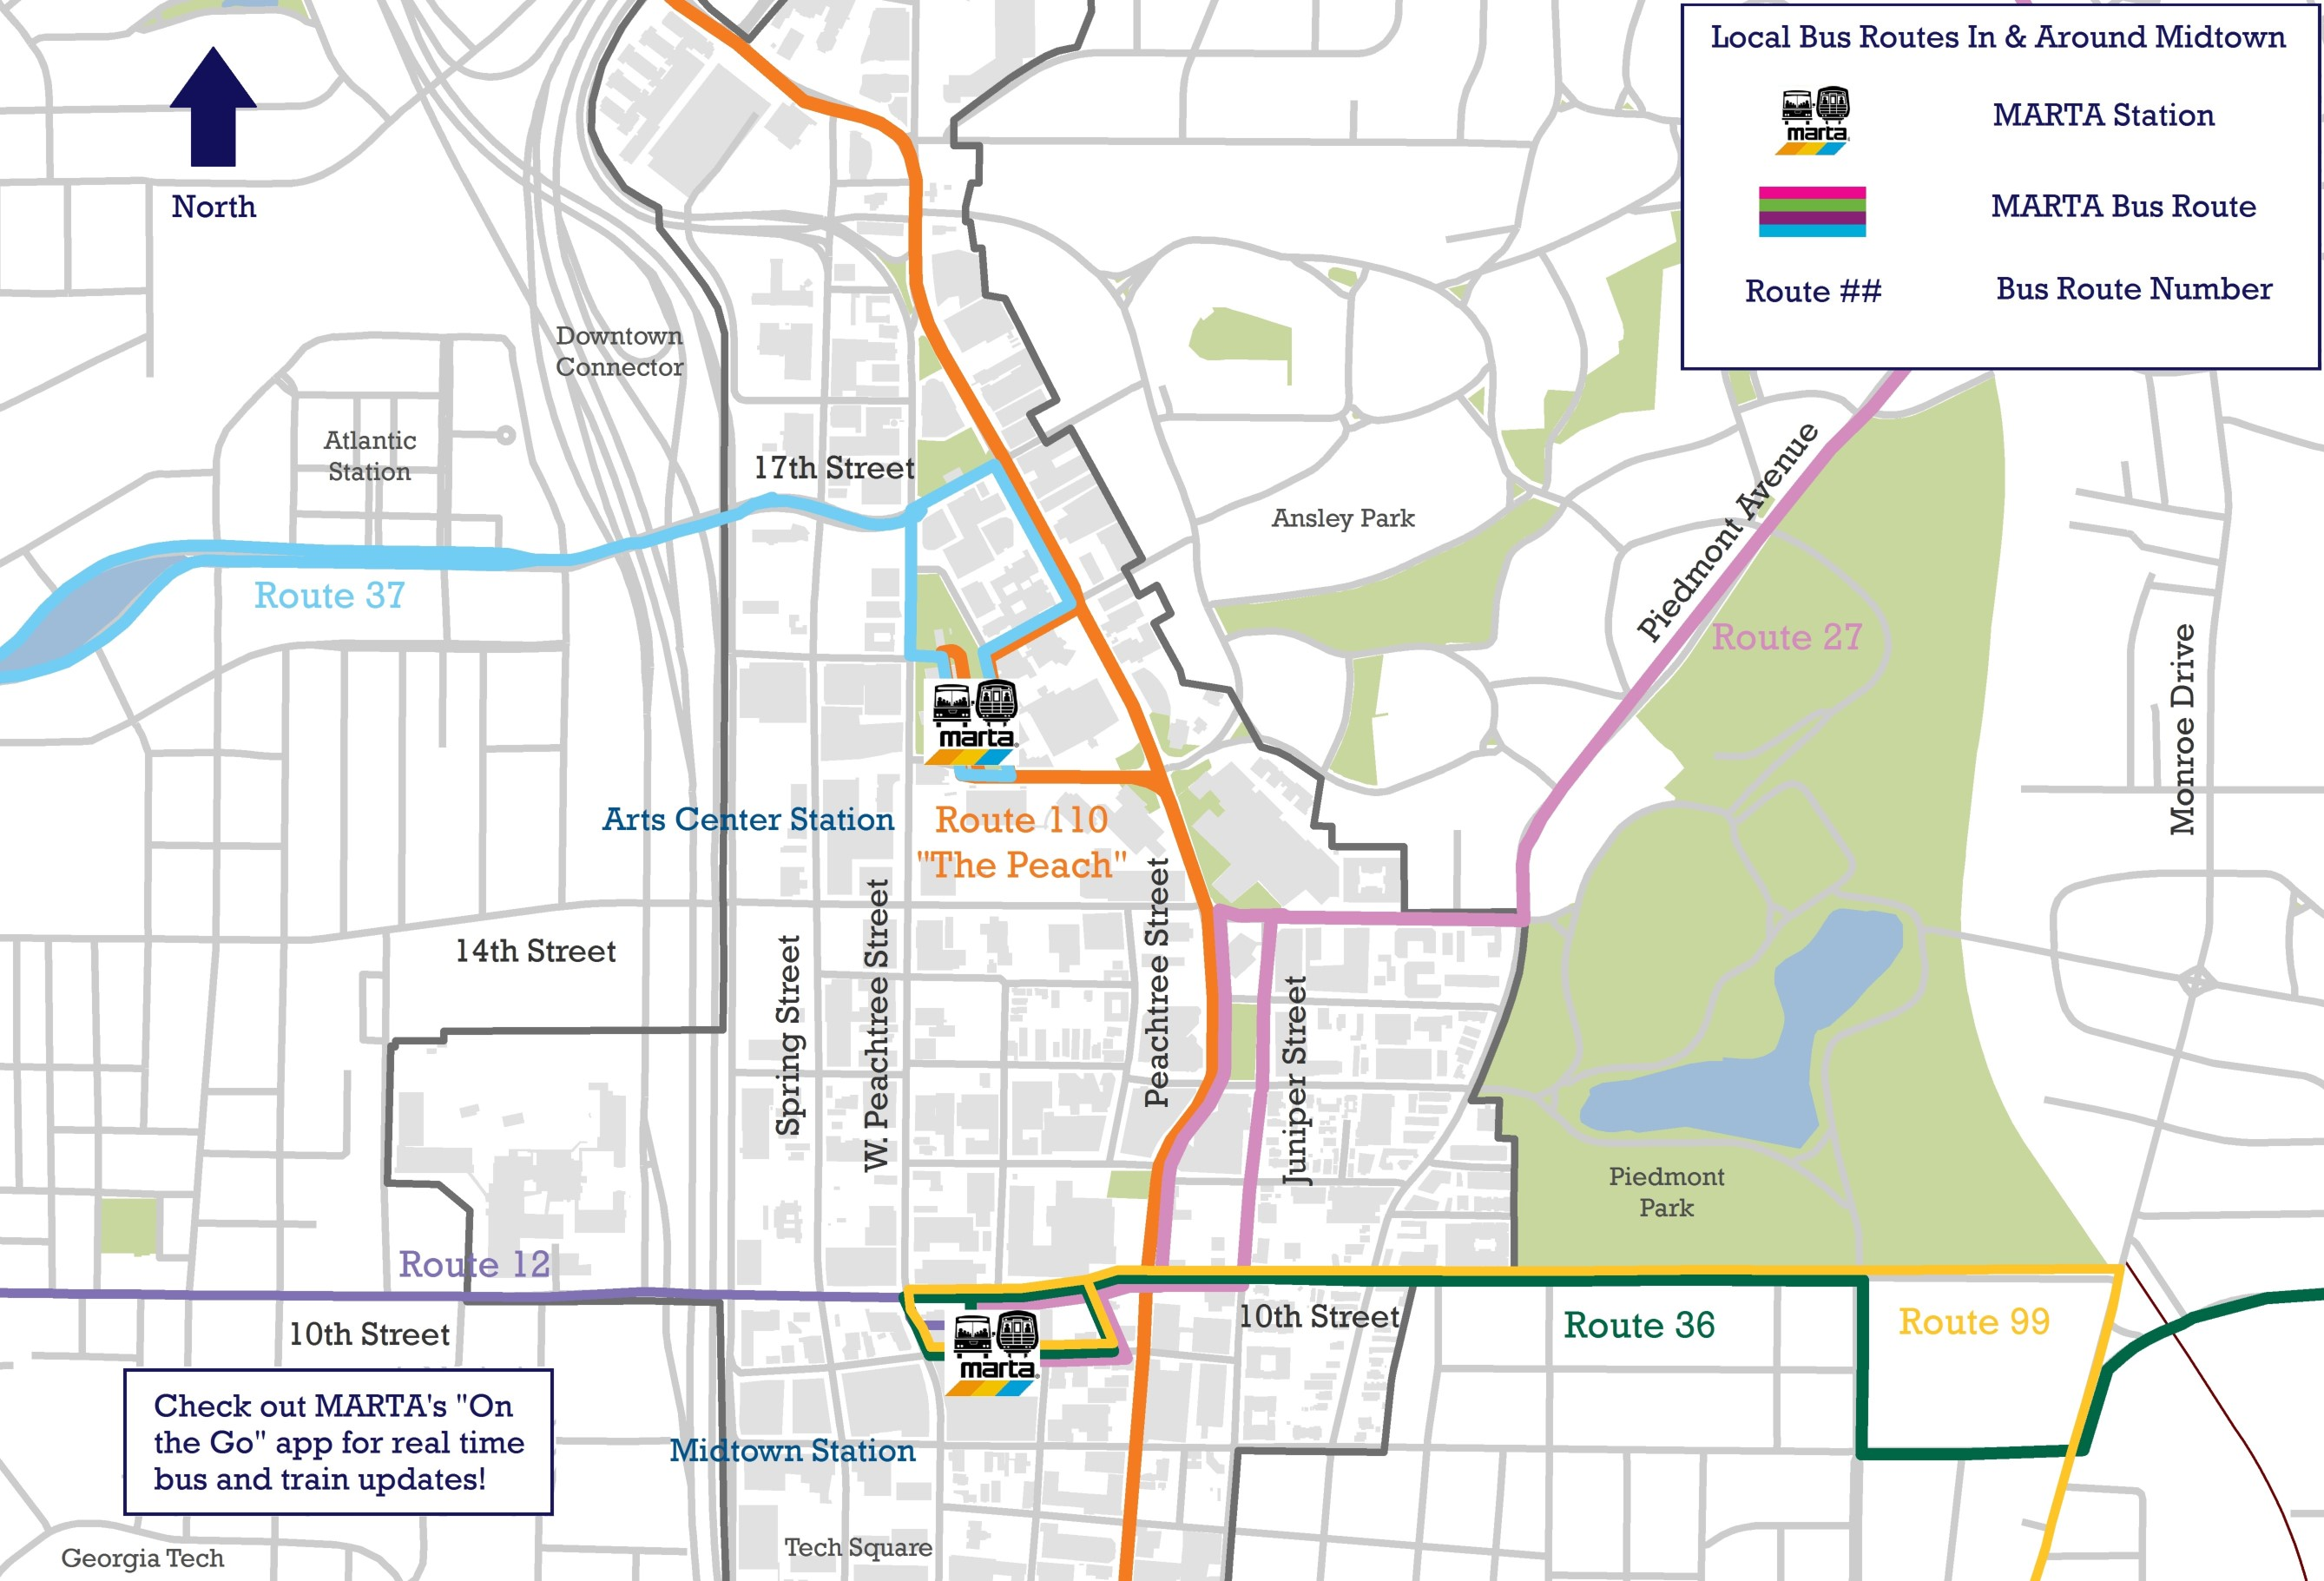 marta bus routes maps